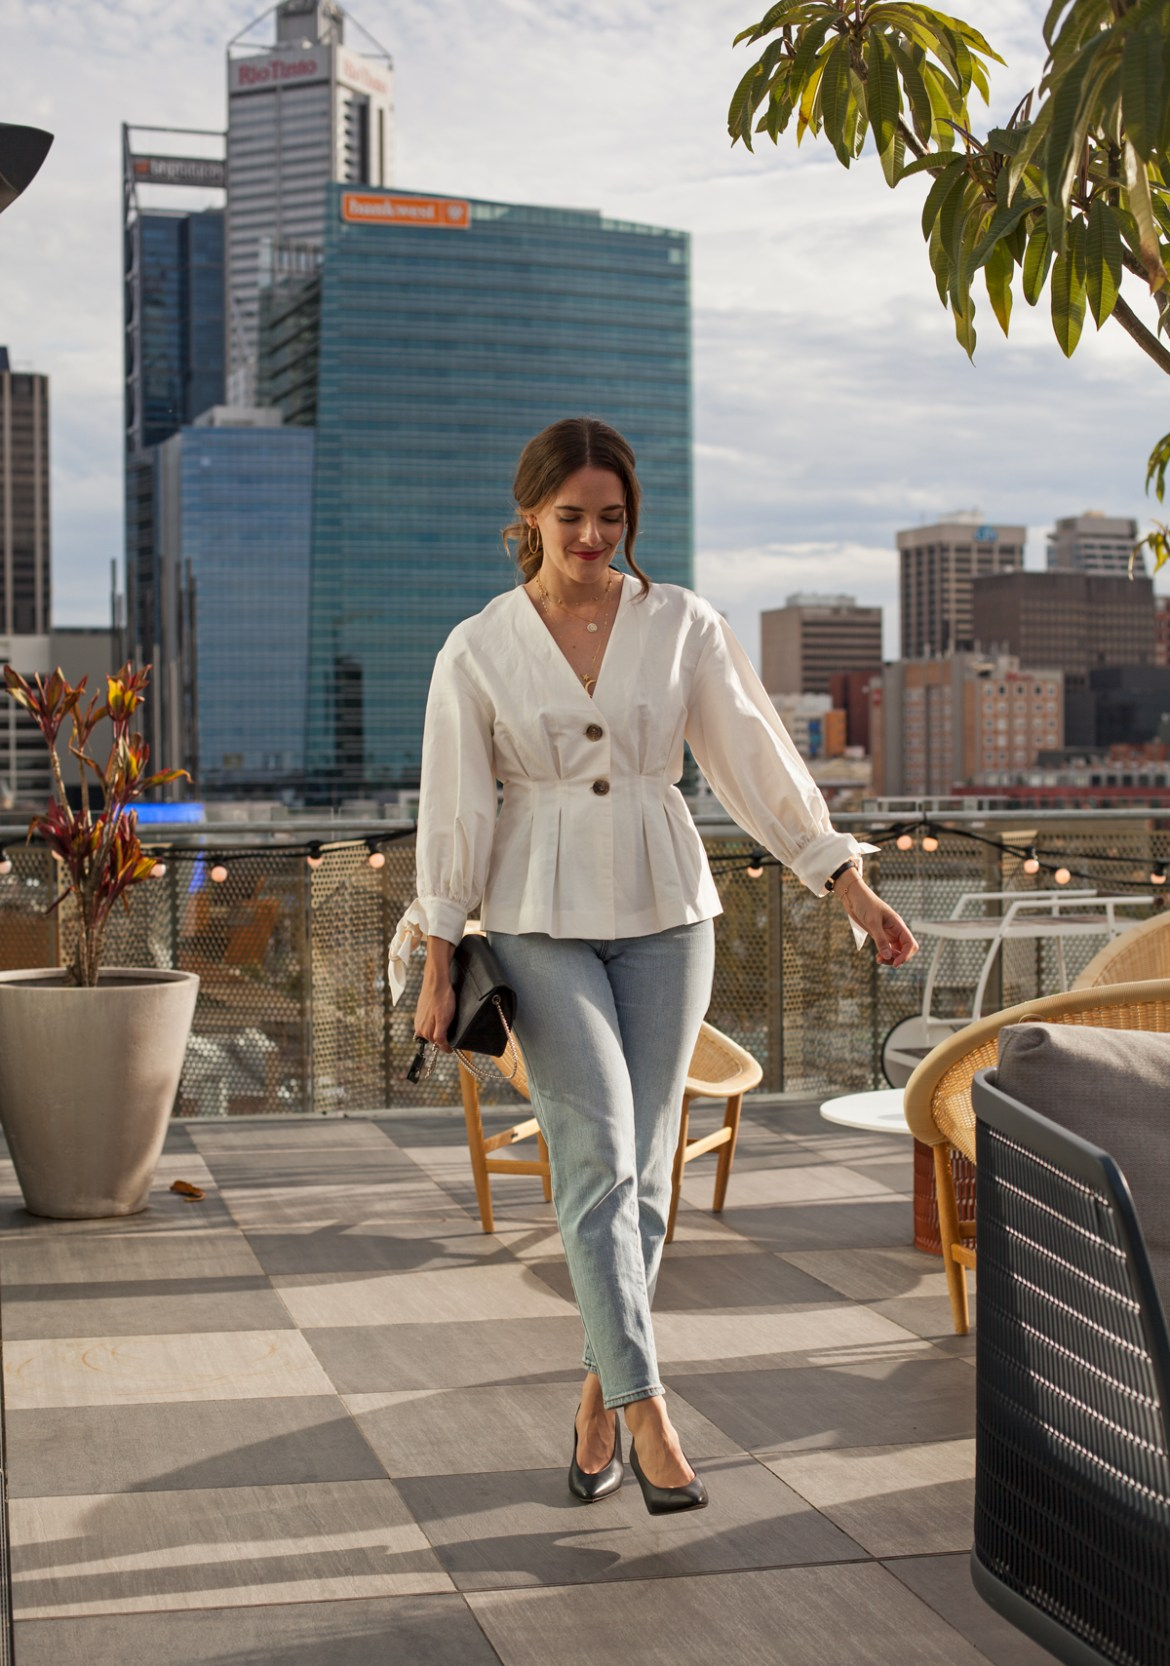 Zara top and Abrand jeans worn by Jenelle from Inspiring Wit blog on the rooftop of Alex Hotel Perth